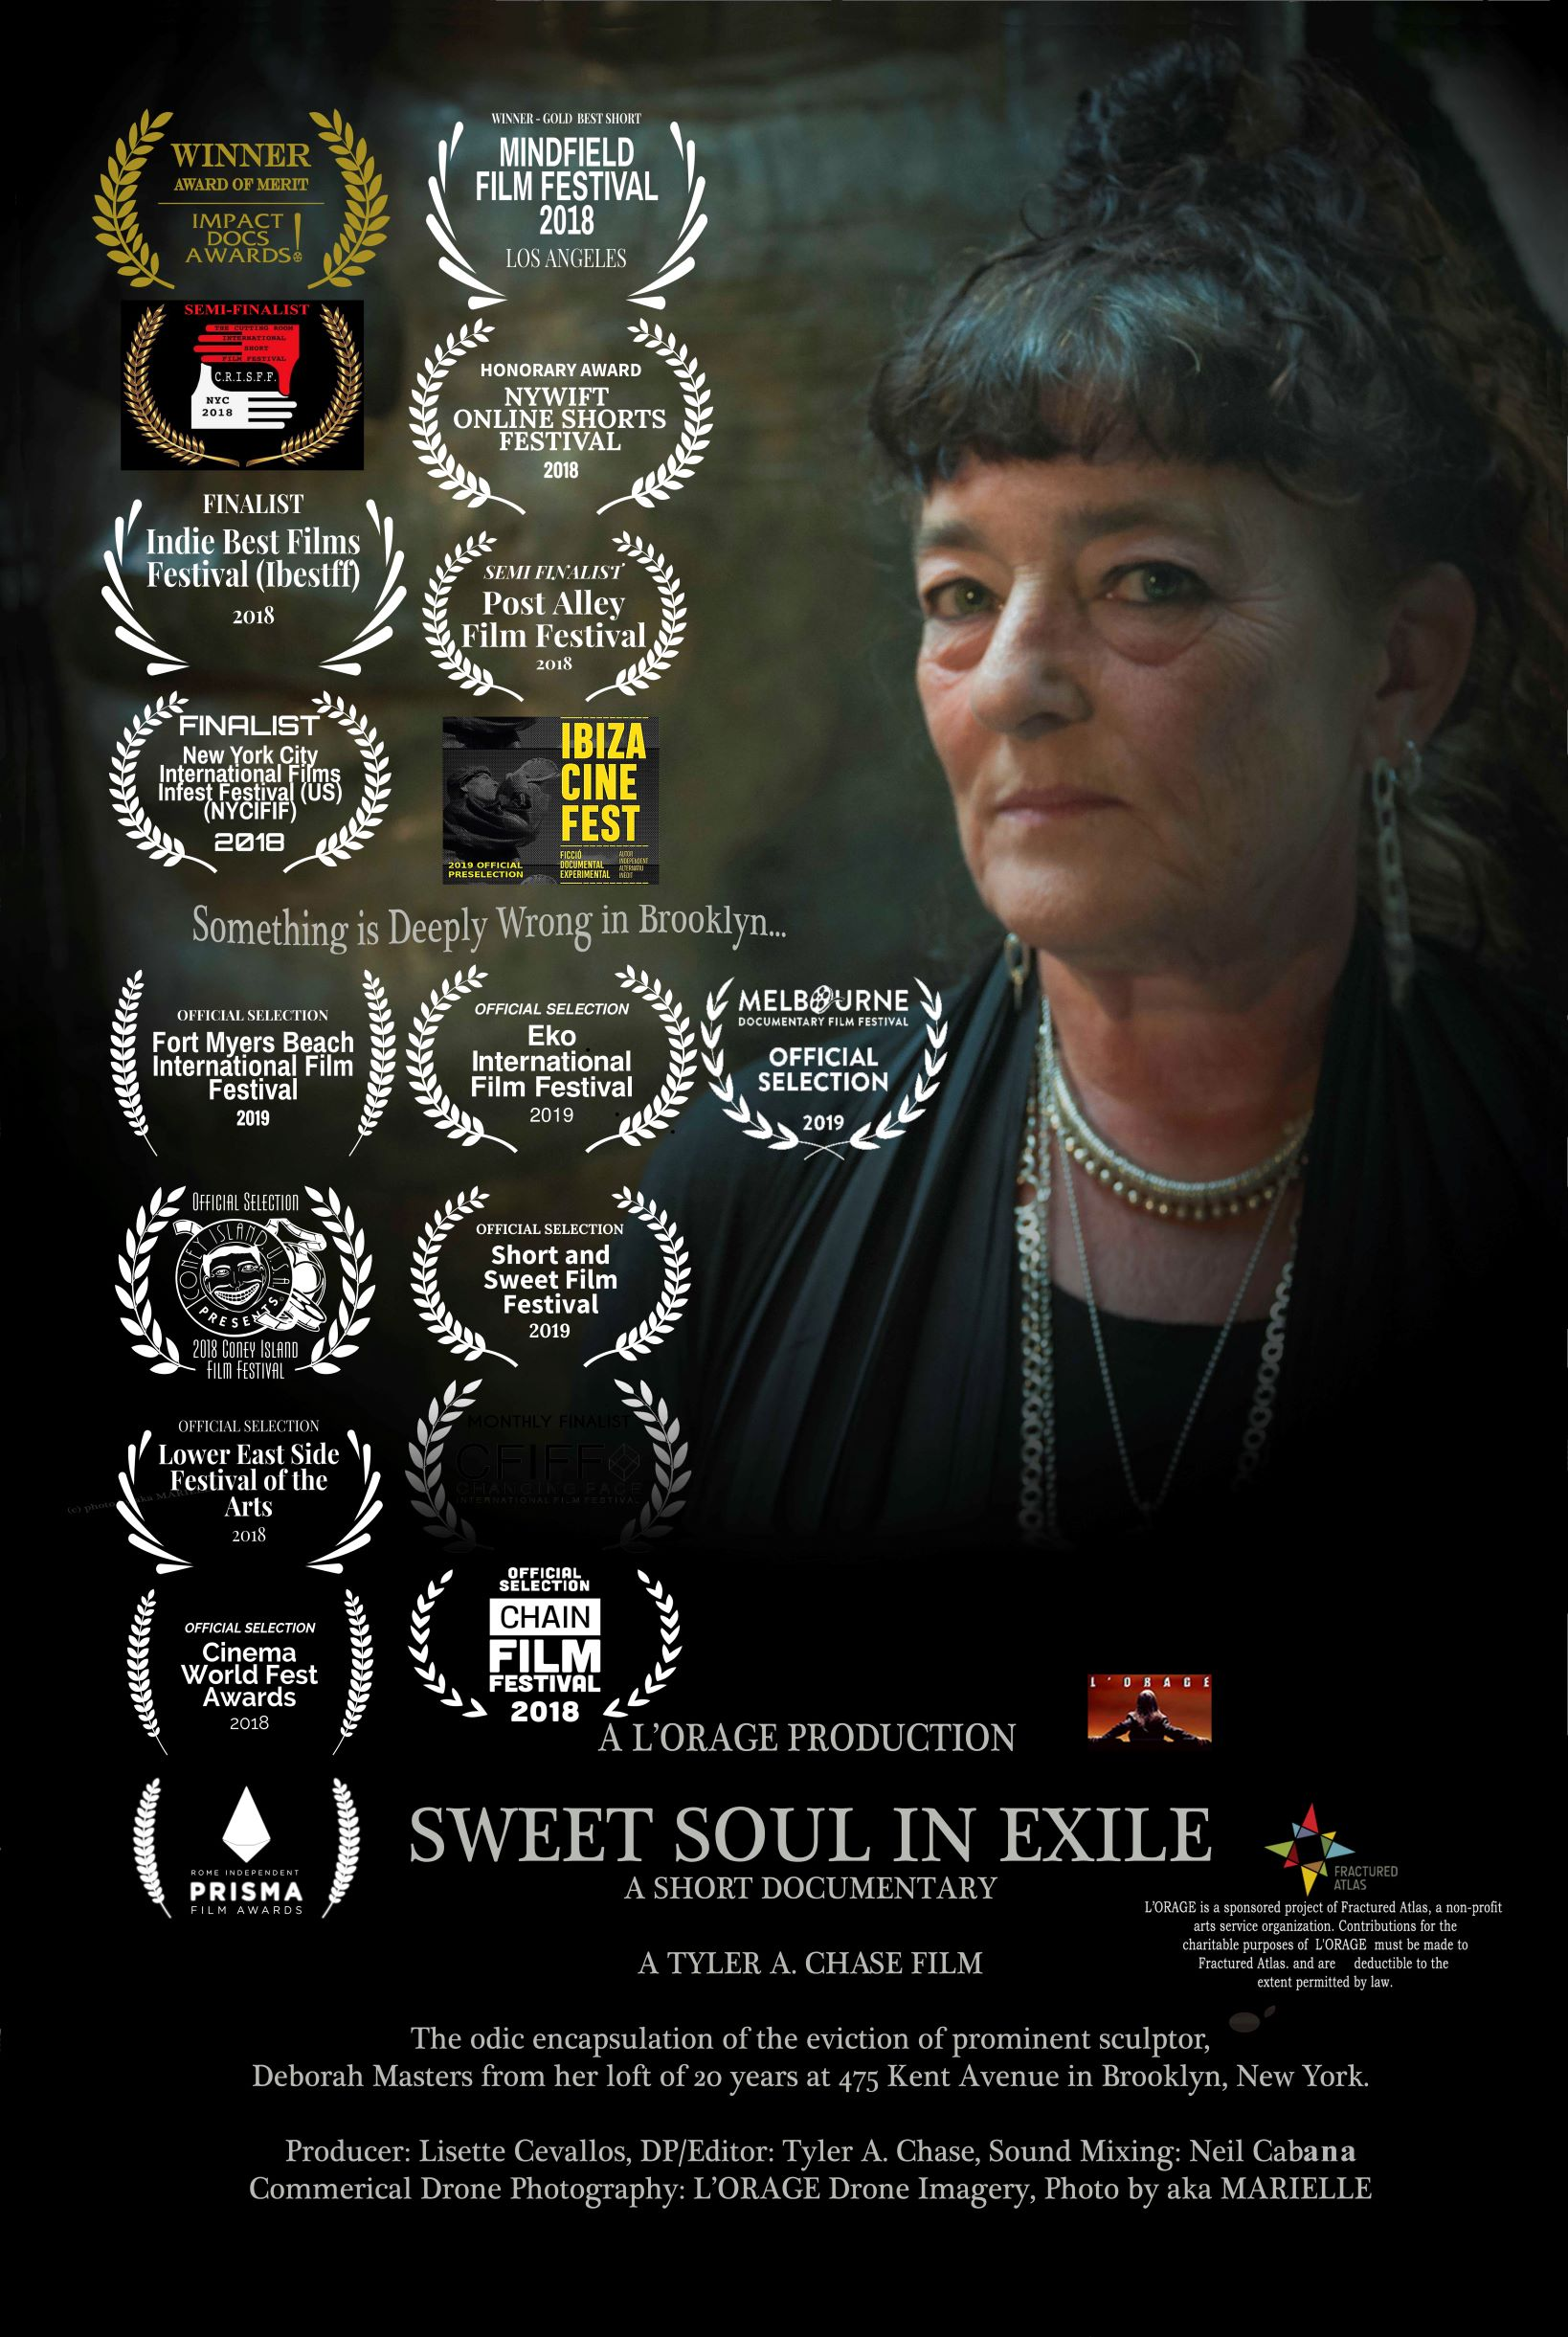 Sweet Soul in Exile poster